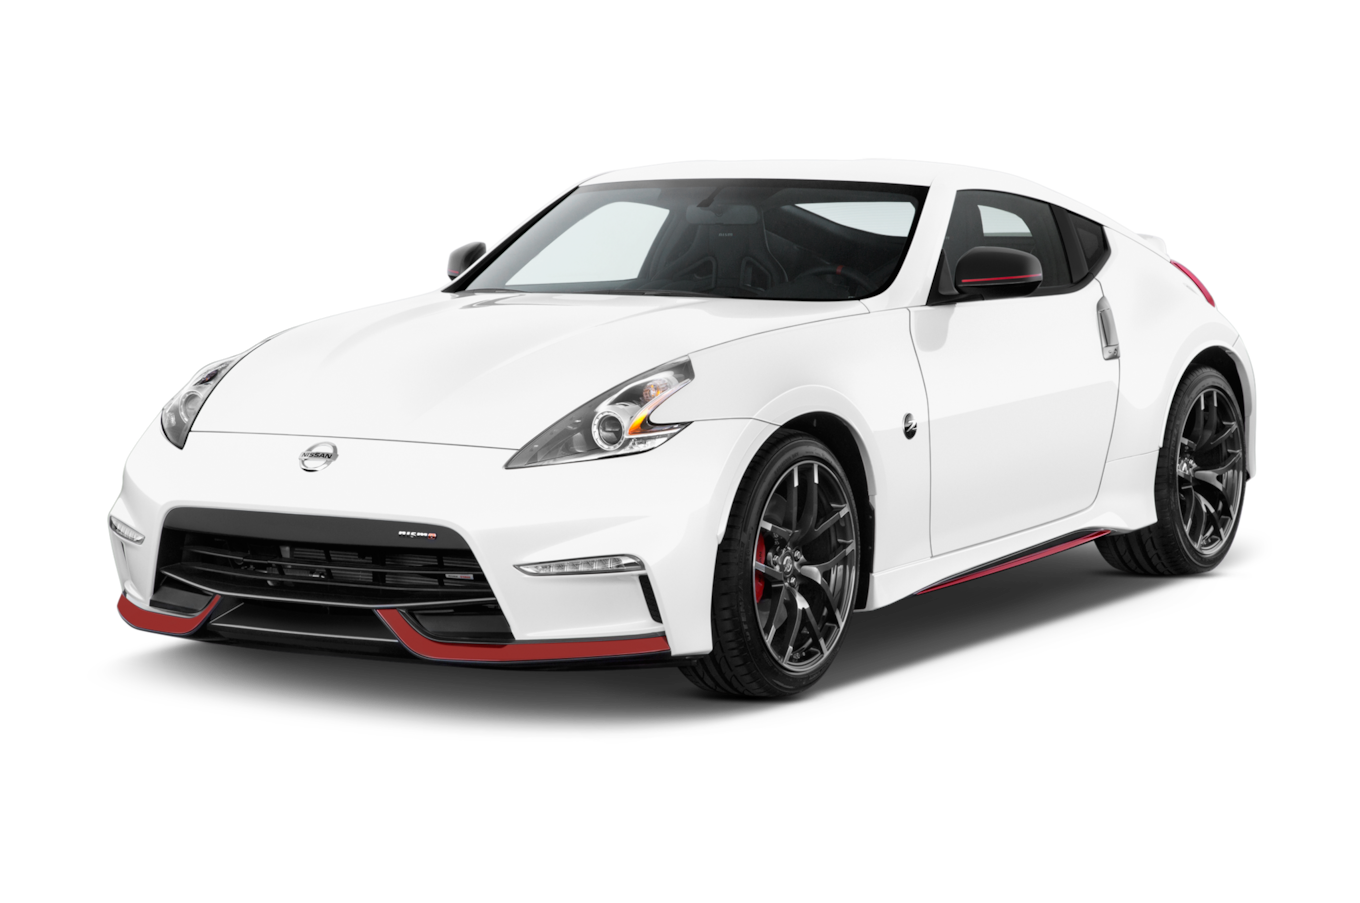 91 New 2019 Nissan 370Z Redesign Picture with 2019 Nissan 370Z Redesign